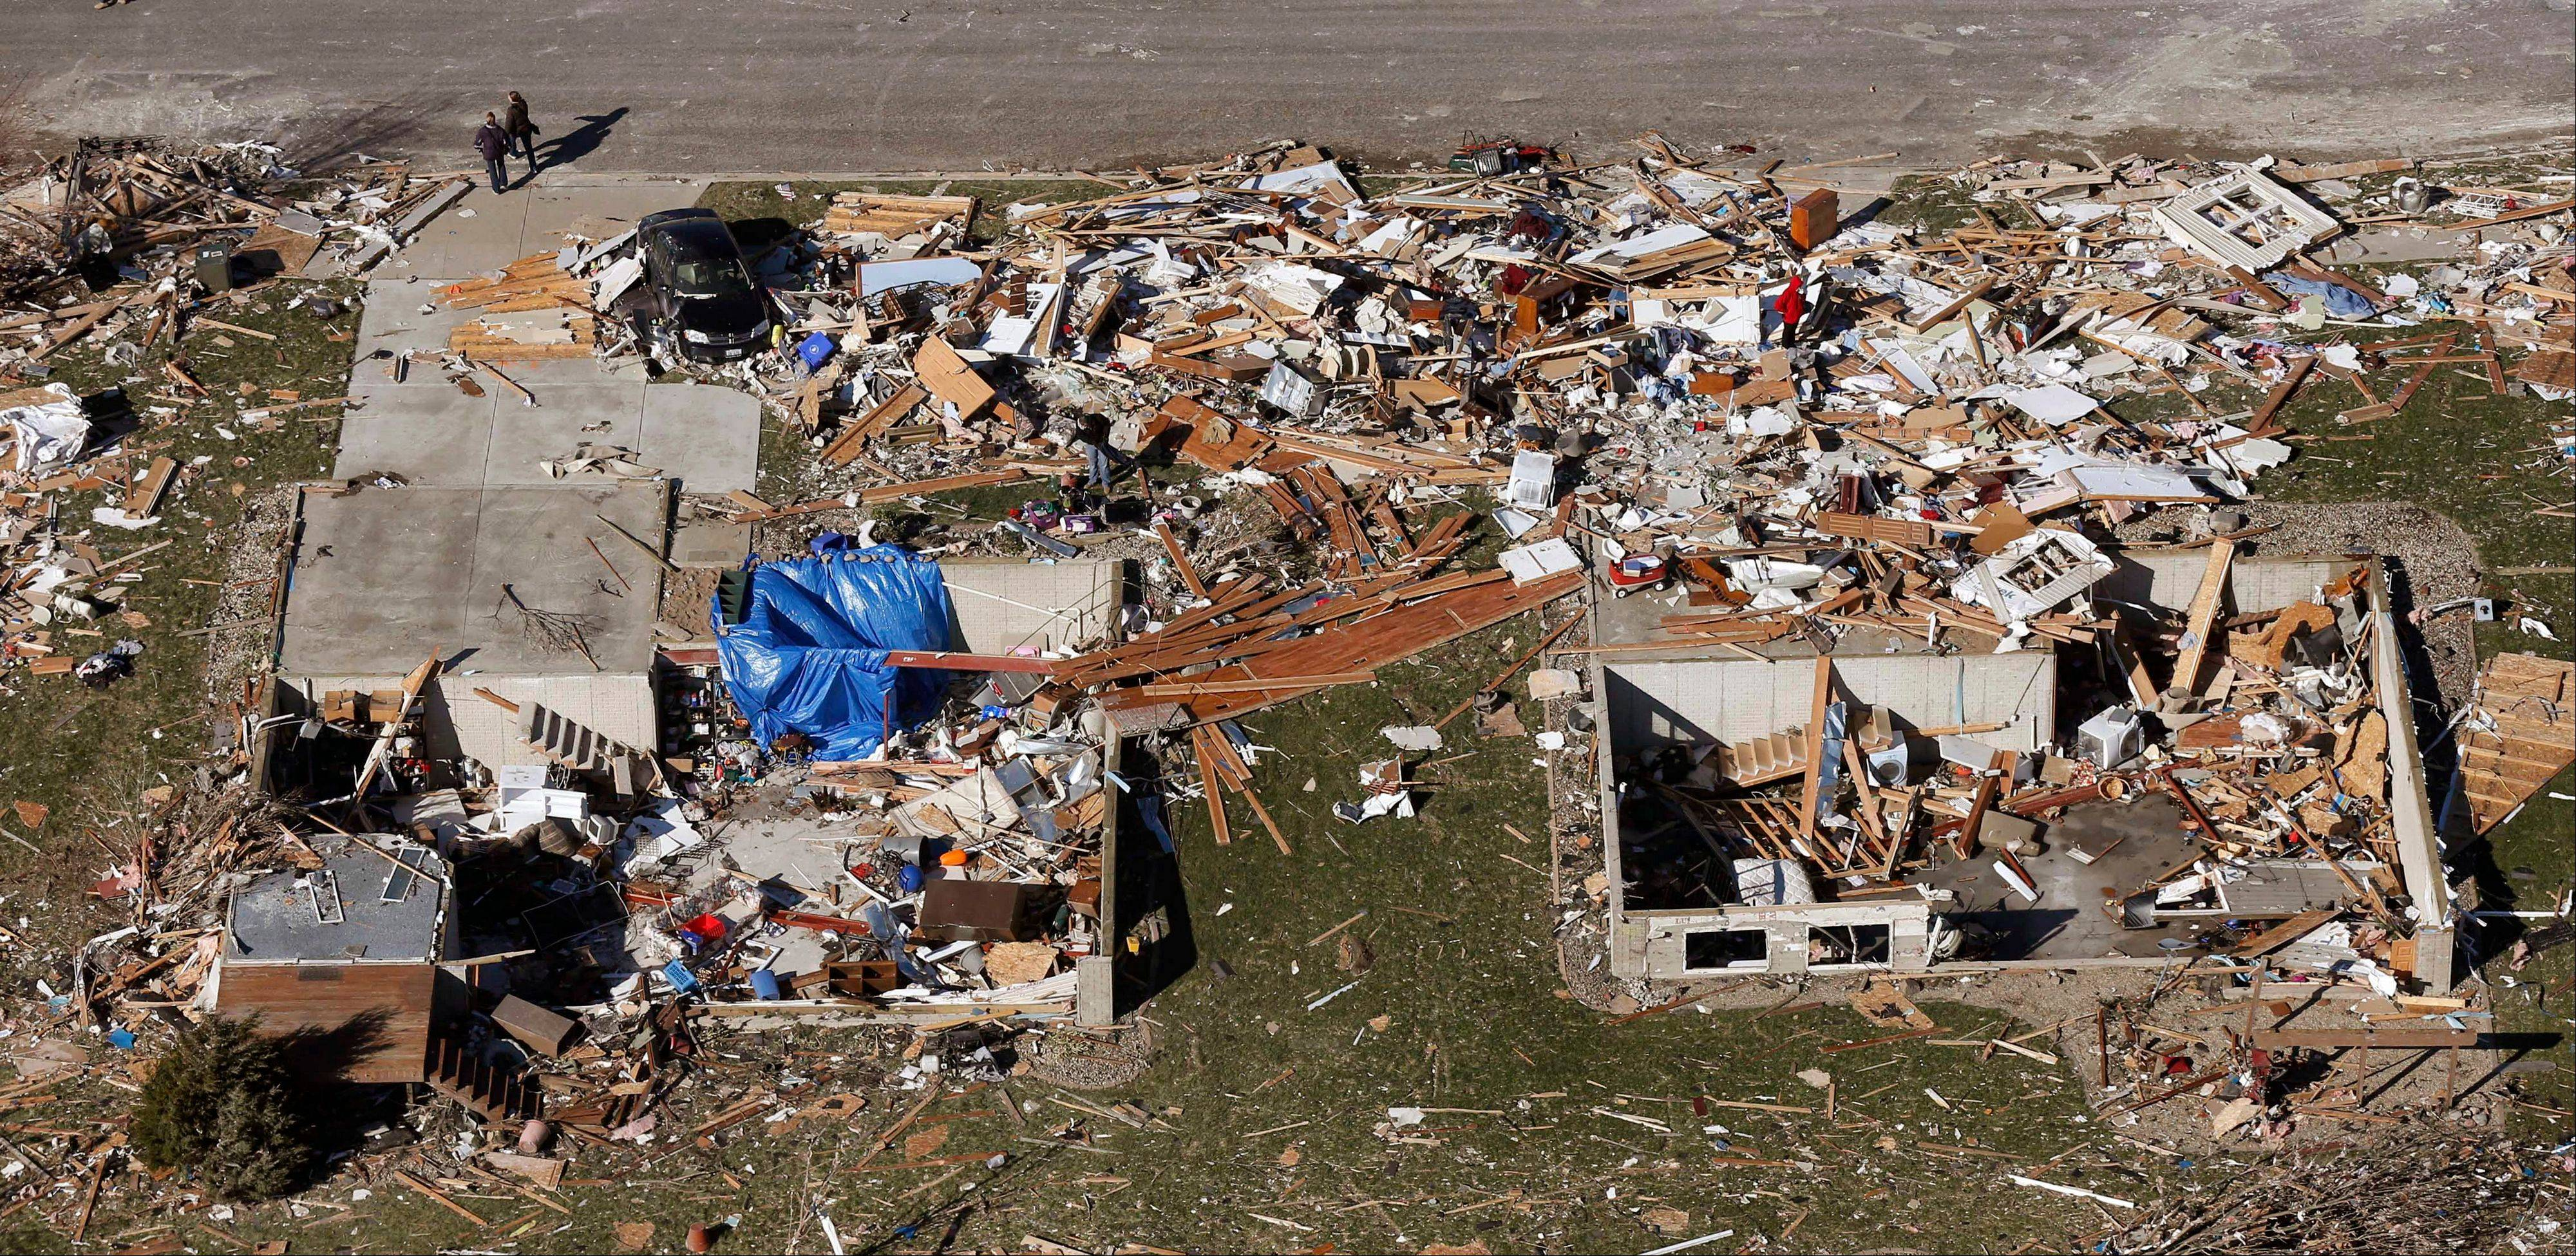 This aerial view on Monday, Nov. 18, 2013, shows homes that were destroyed by a tornado that hit the western Illinois town of Washington on Sunday. It was one of the worst-hit areas after intense storms and tornadoes swept through Illinois. The National Weather Service says the tornado that hit Washington had a preliminary rating of EF-4, meaning wind speeds of 170 mph to 190 mph.